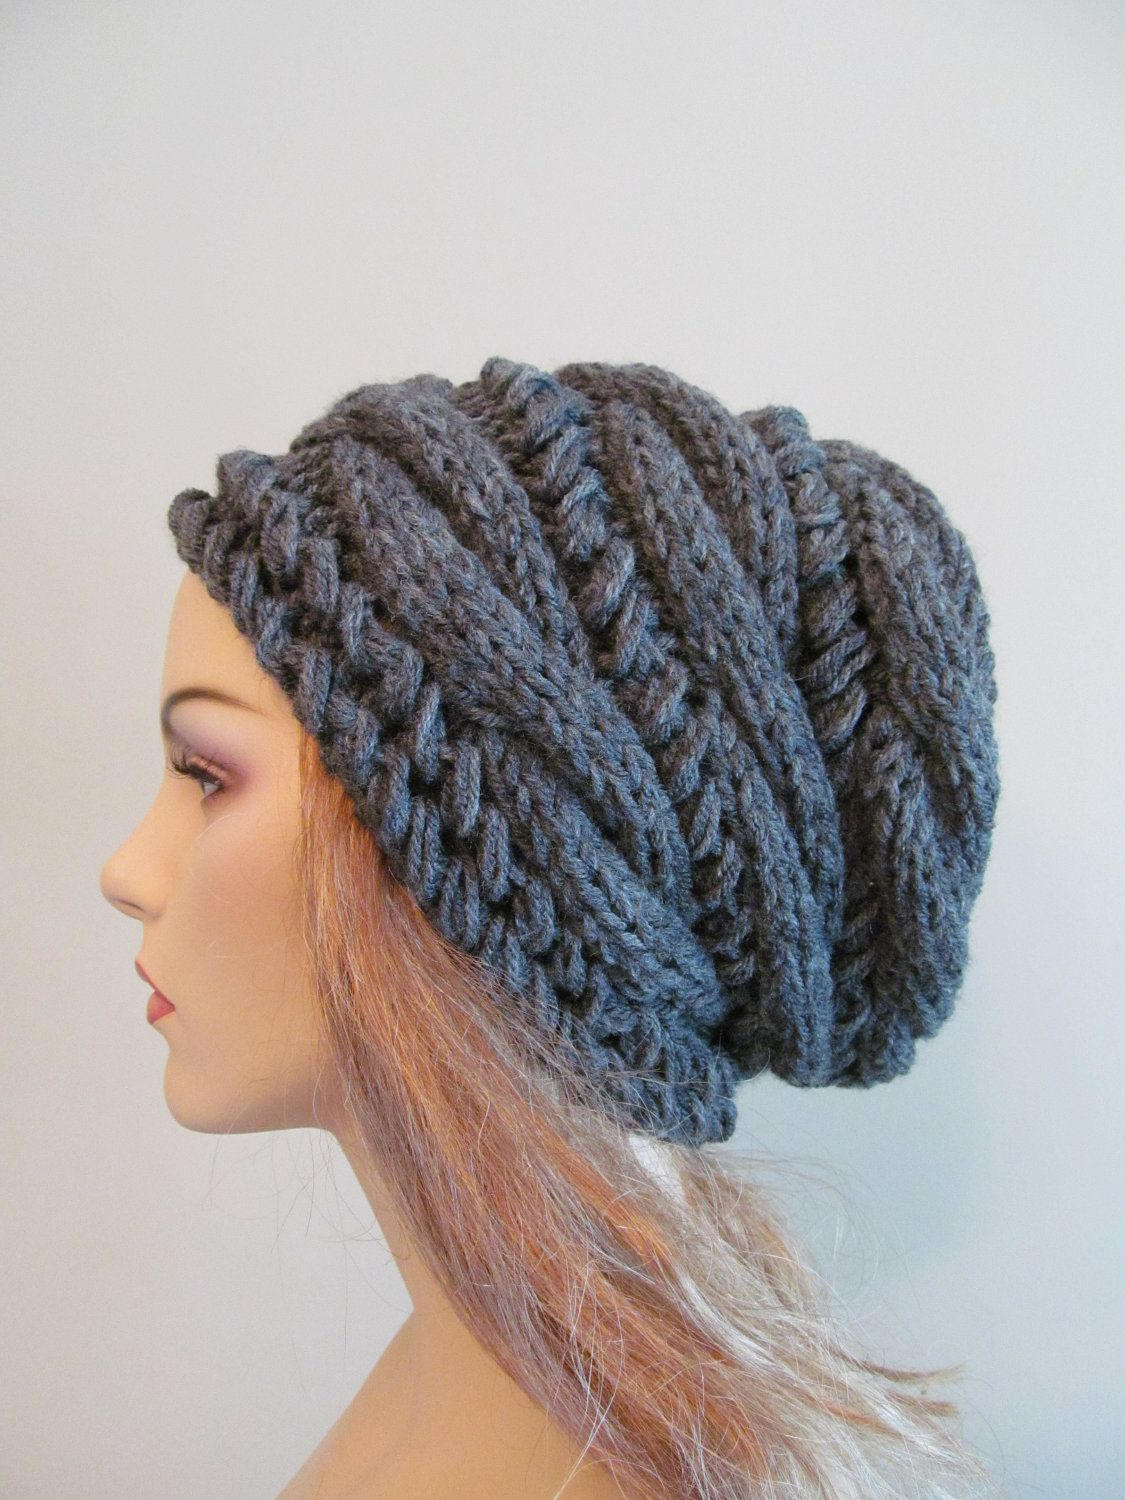 fbc4554894d Slouchy Beanie Slouch Hats Oversized Baggy cabled hat womens spring  accessory Grey Hand Made Knit.  43.99